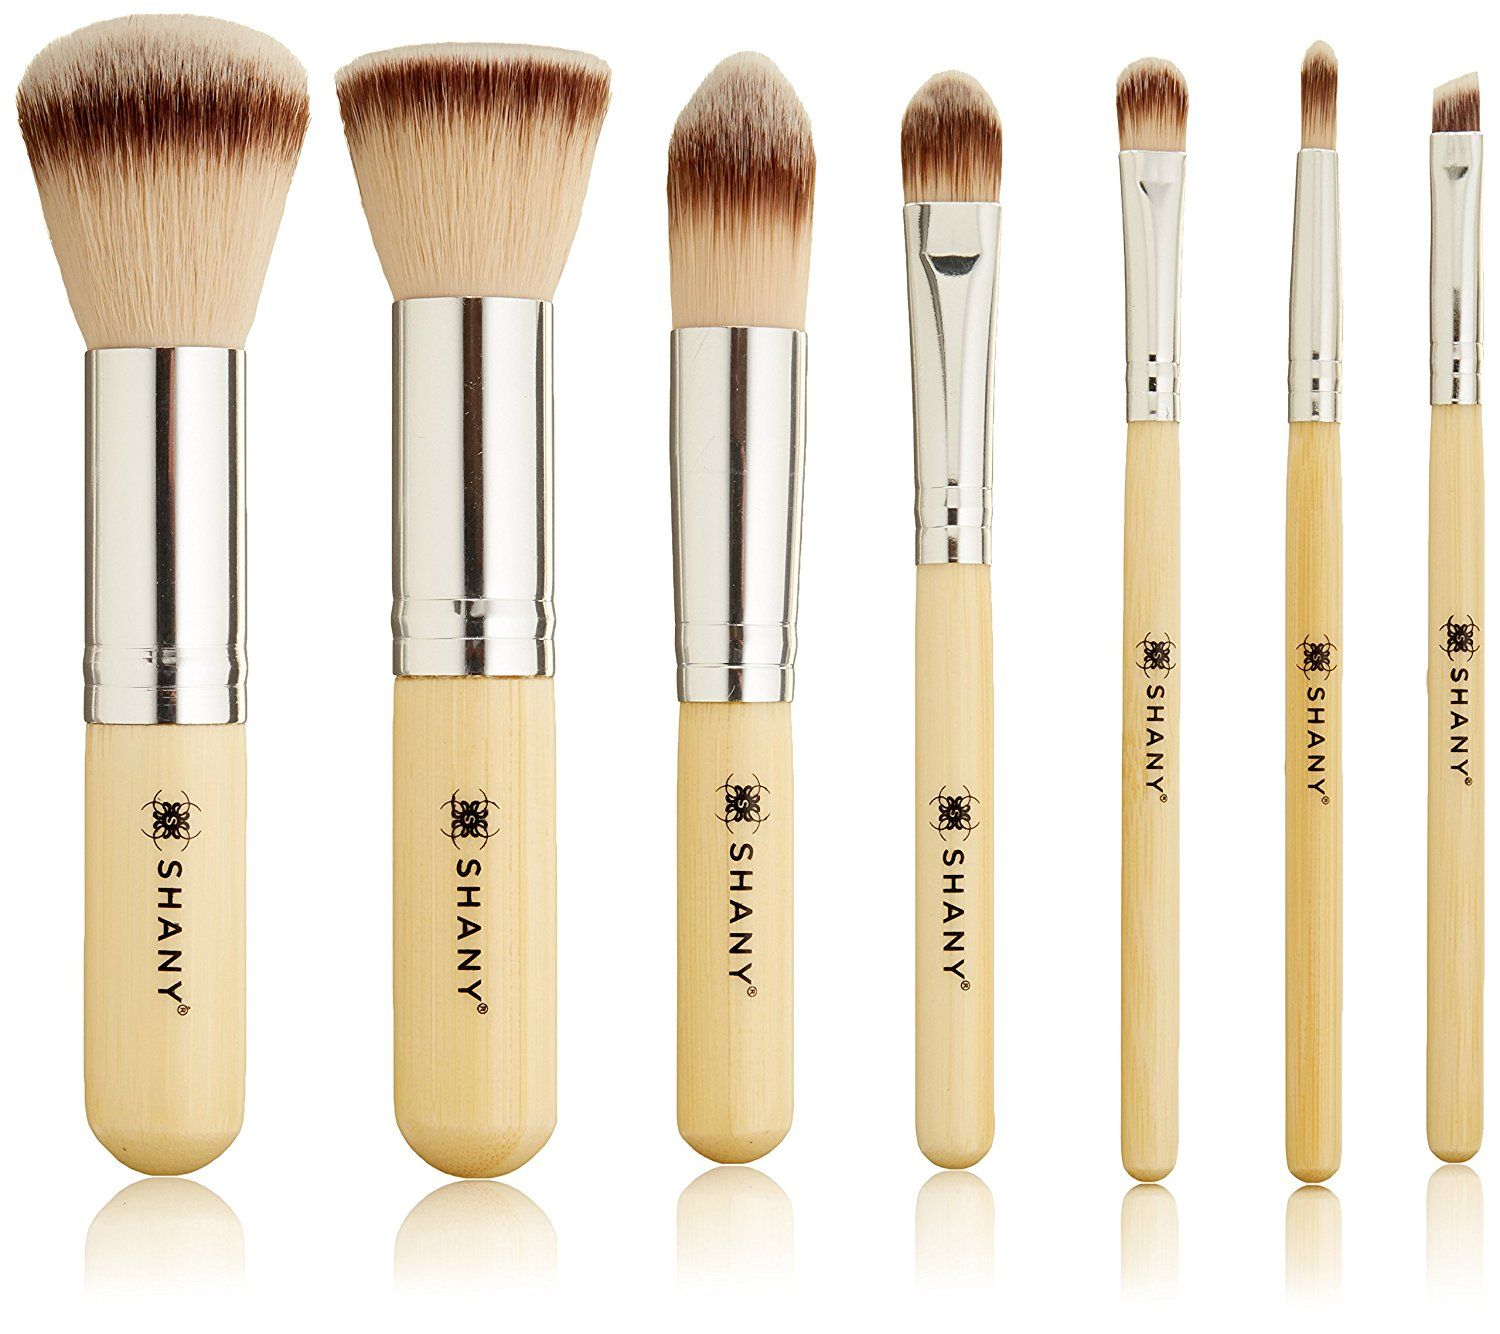 SHANY 7 Piece Petite Pro Bamboo Brush Set with Carrying